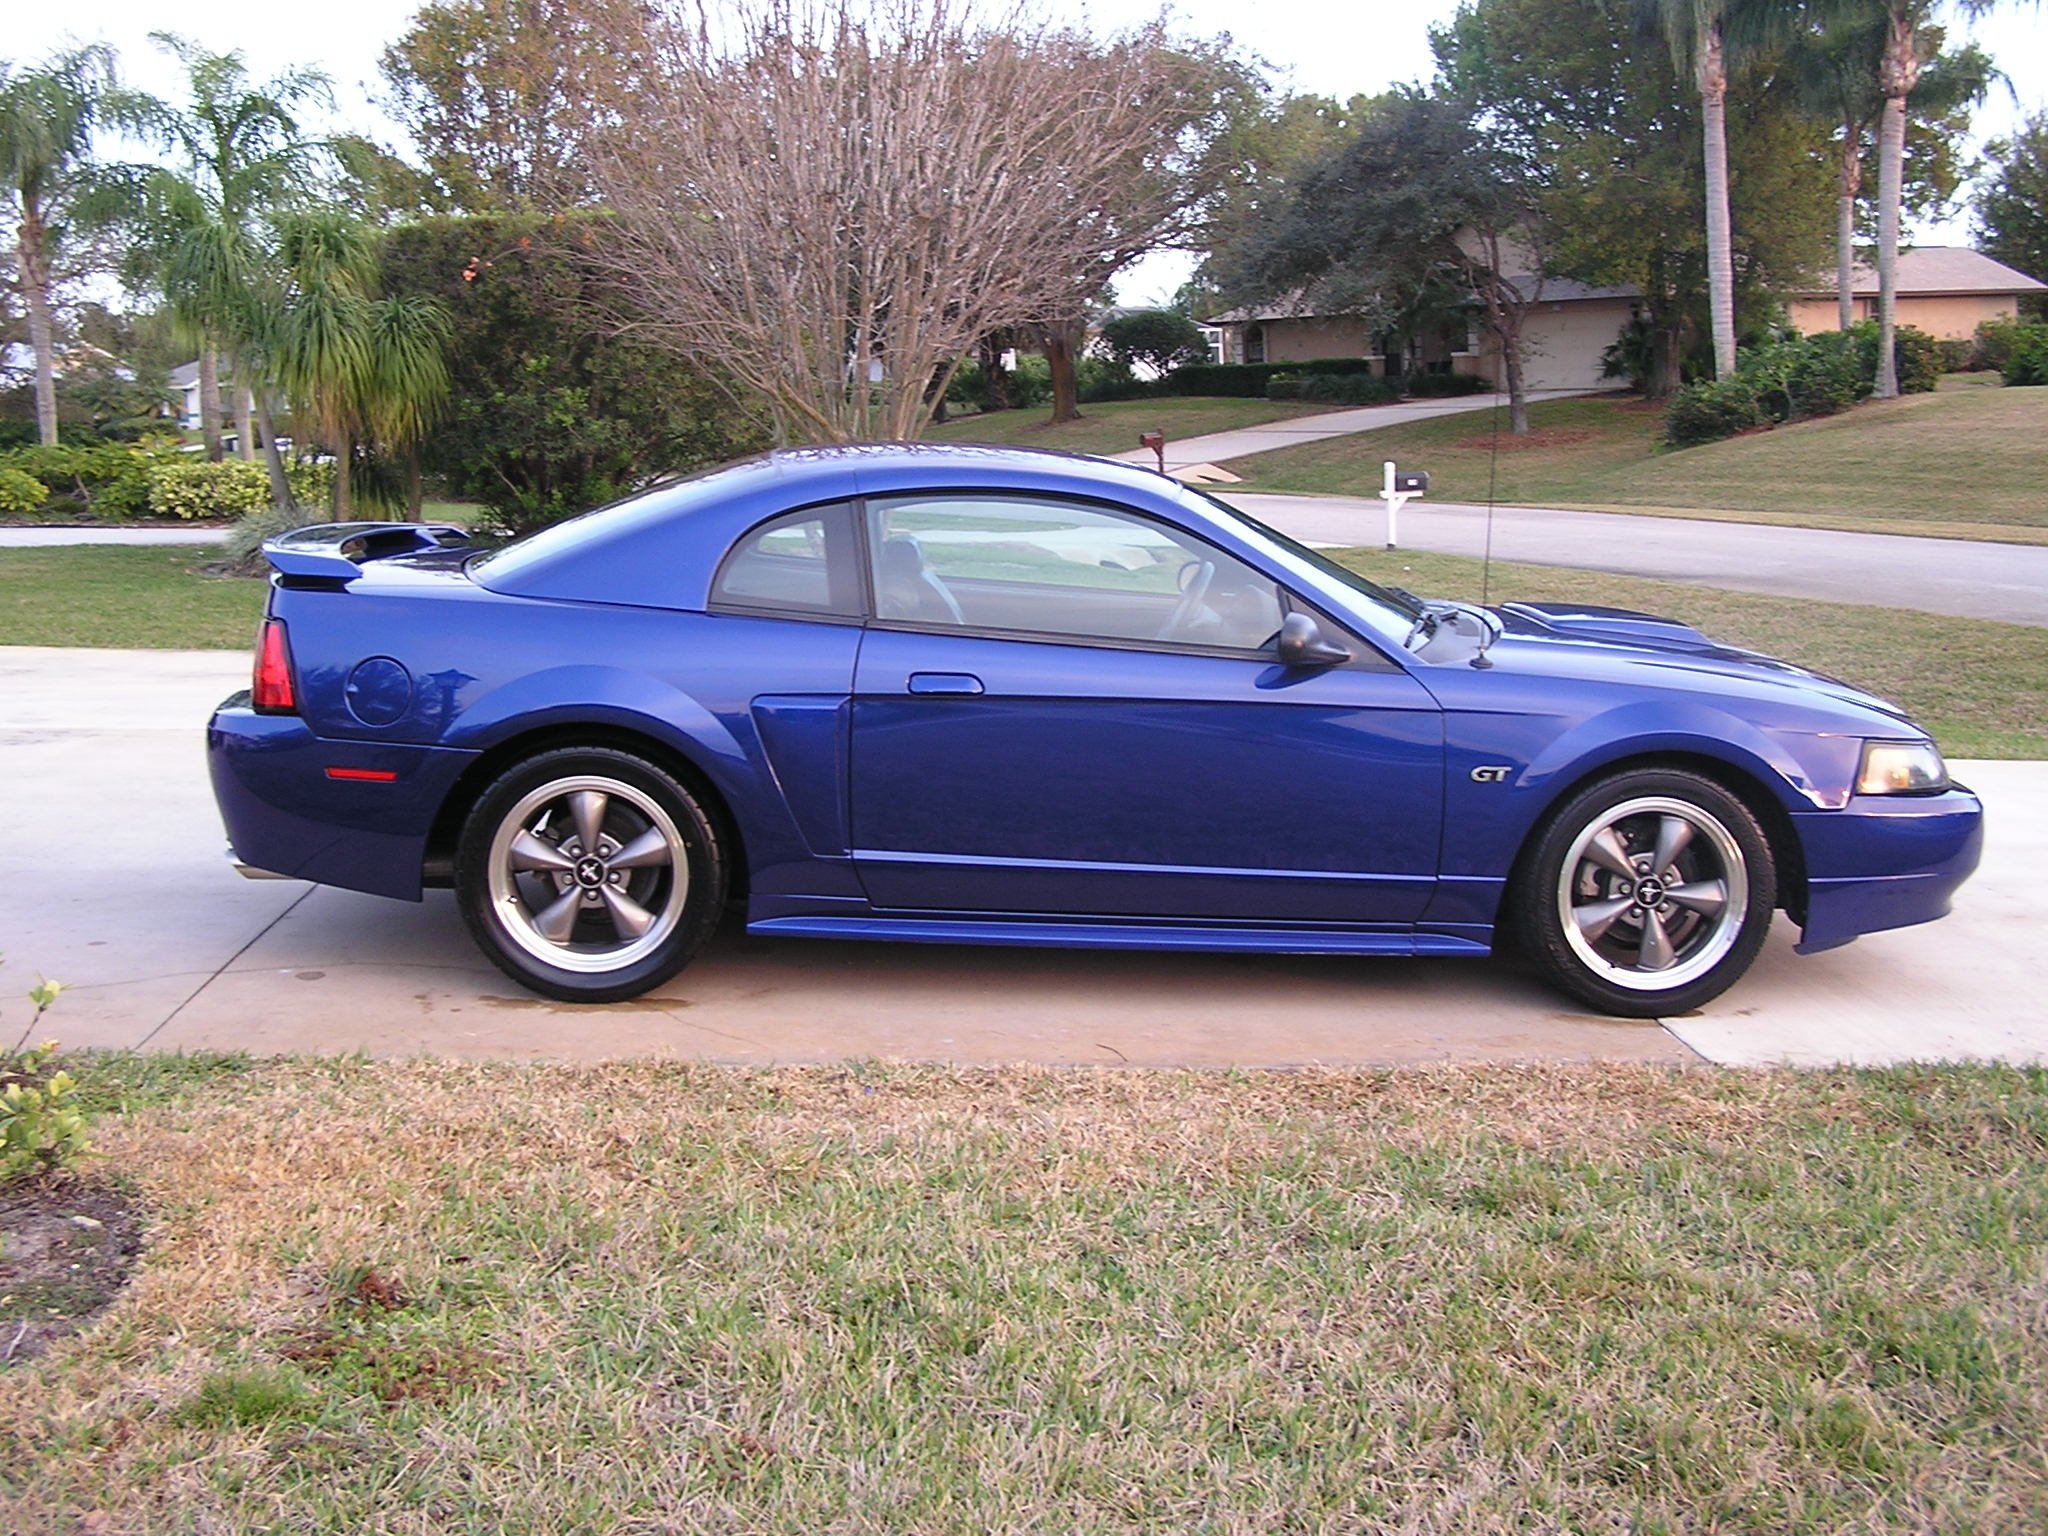 Ford Camber >> Question about Camber Kit, 2003 Mustang GT? - Ford Mustang Forum